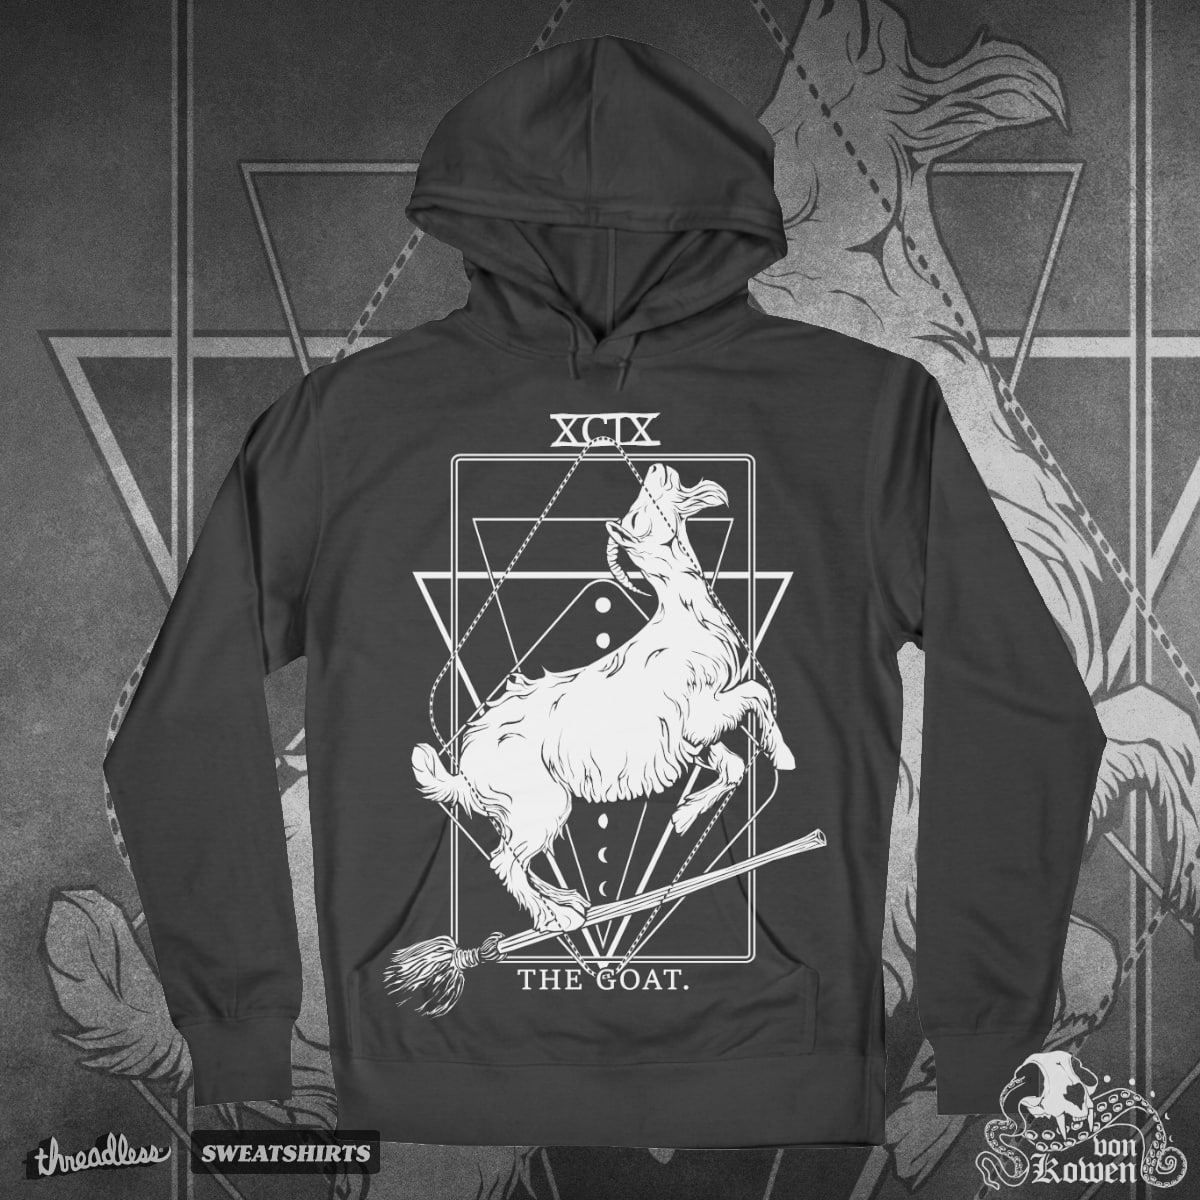 The Goat by vonKowen on Threadless